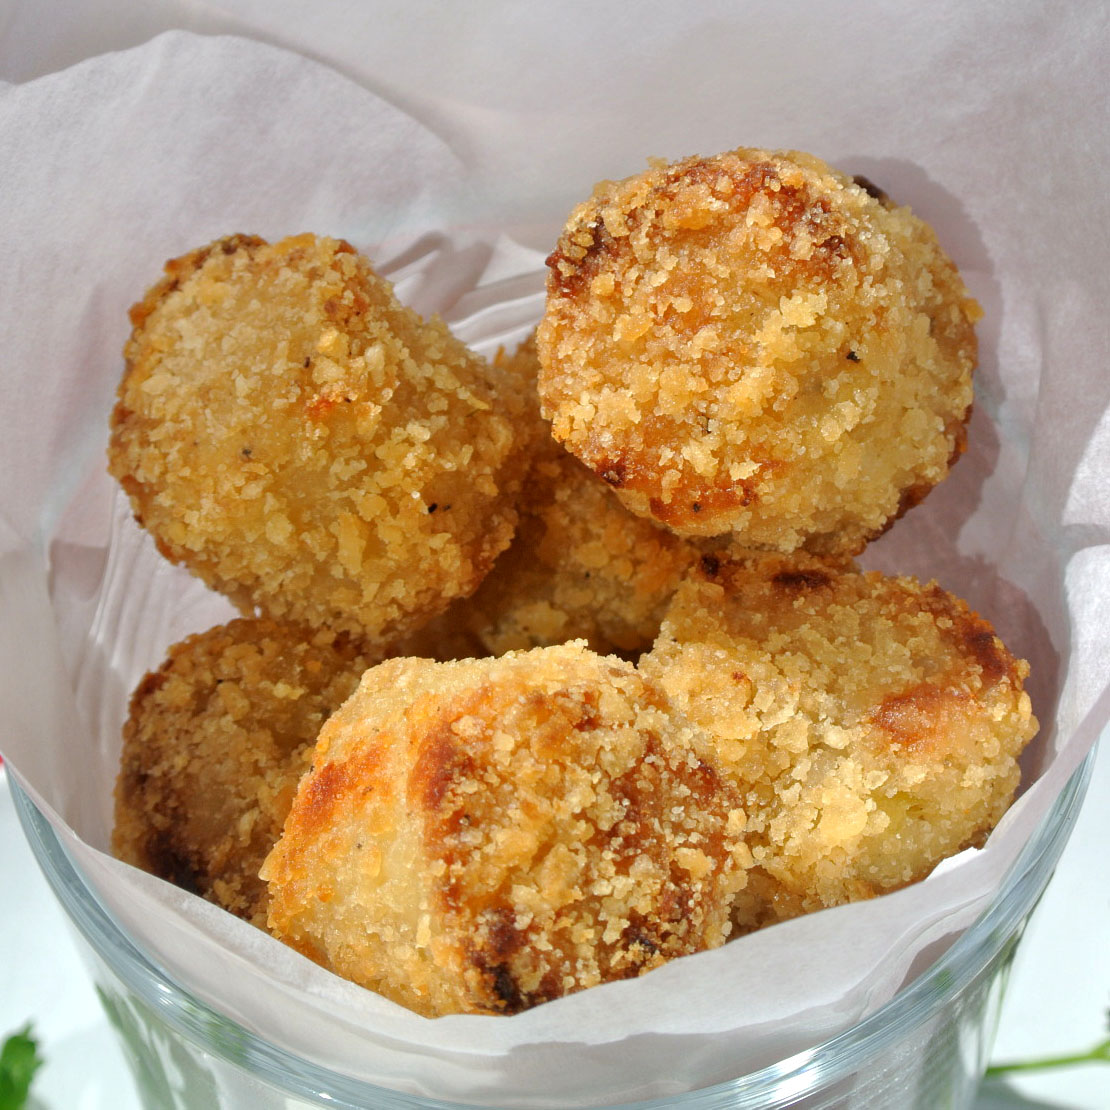 Mom, What's For Dinner?: Homemade Baked Tater Tots